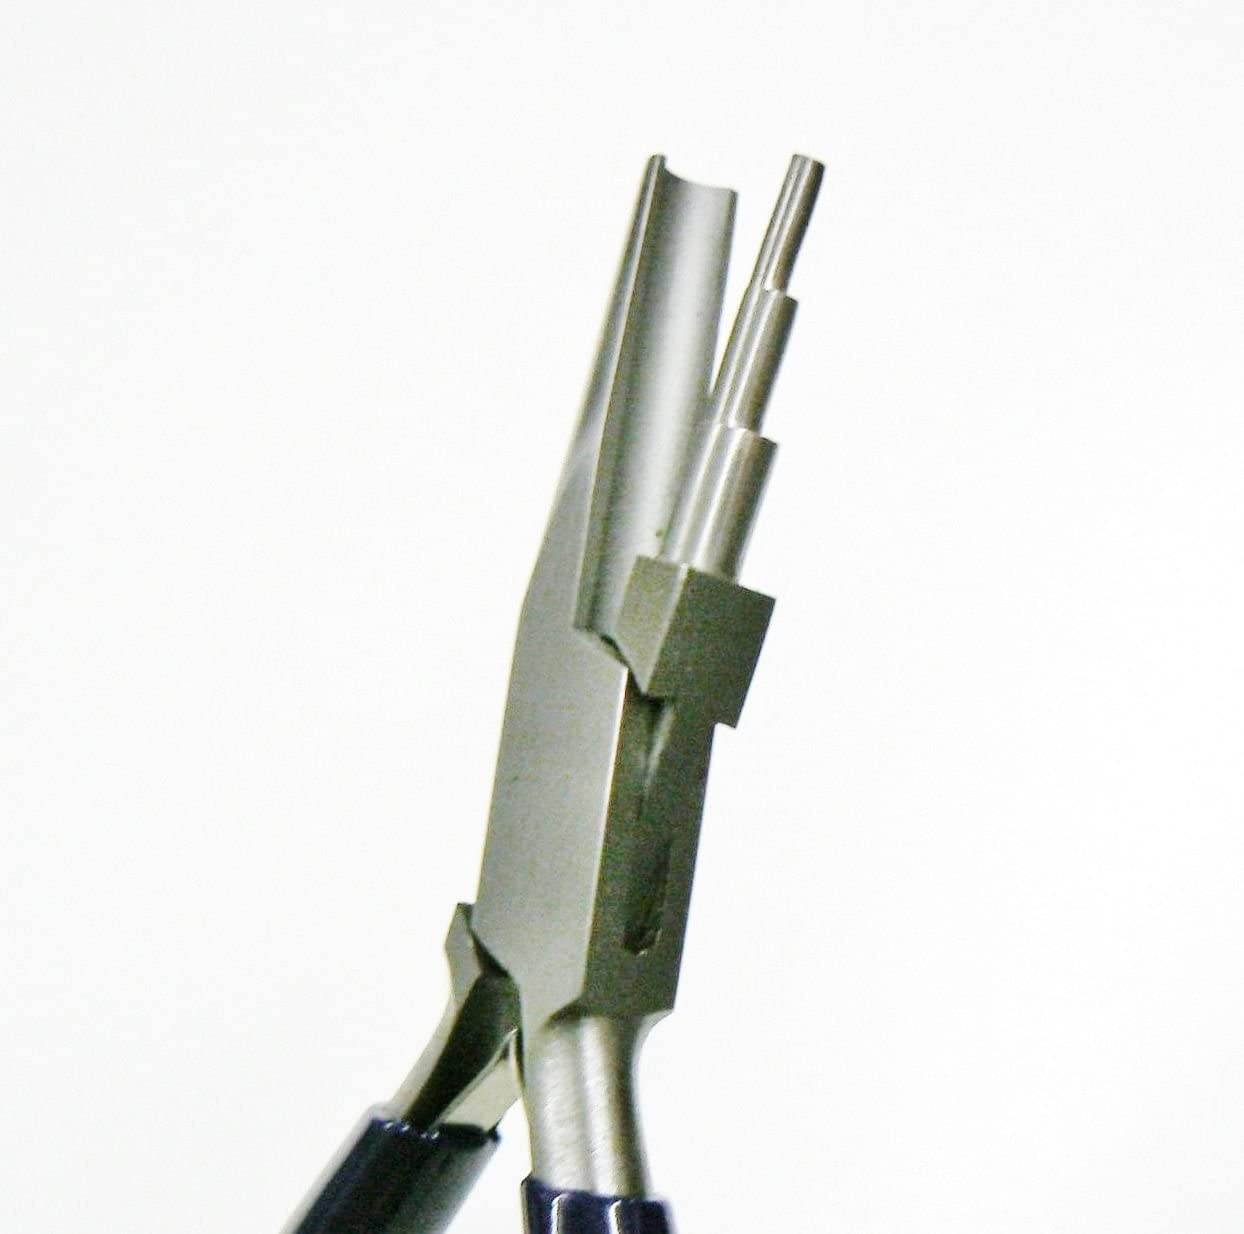 WIRE WORKING PLIERS WIRE LOOPING PLIER COILING FORMING BENDING SMOOTH 3 STEP JAW (E 3) NOVELTOOLS